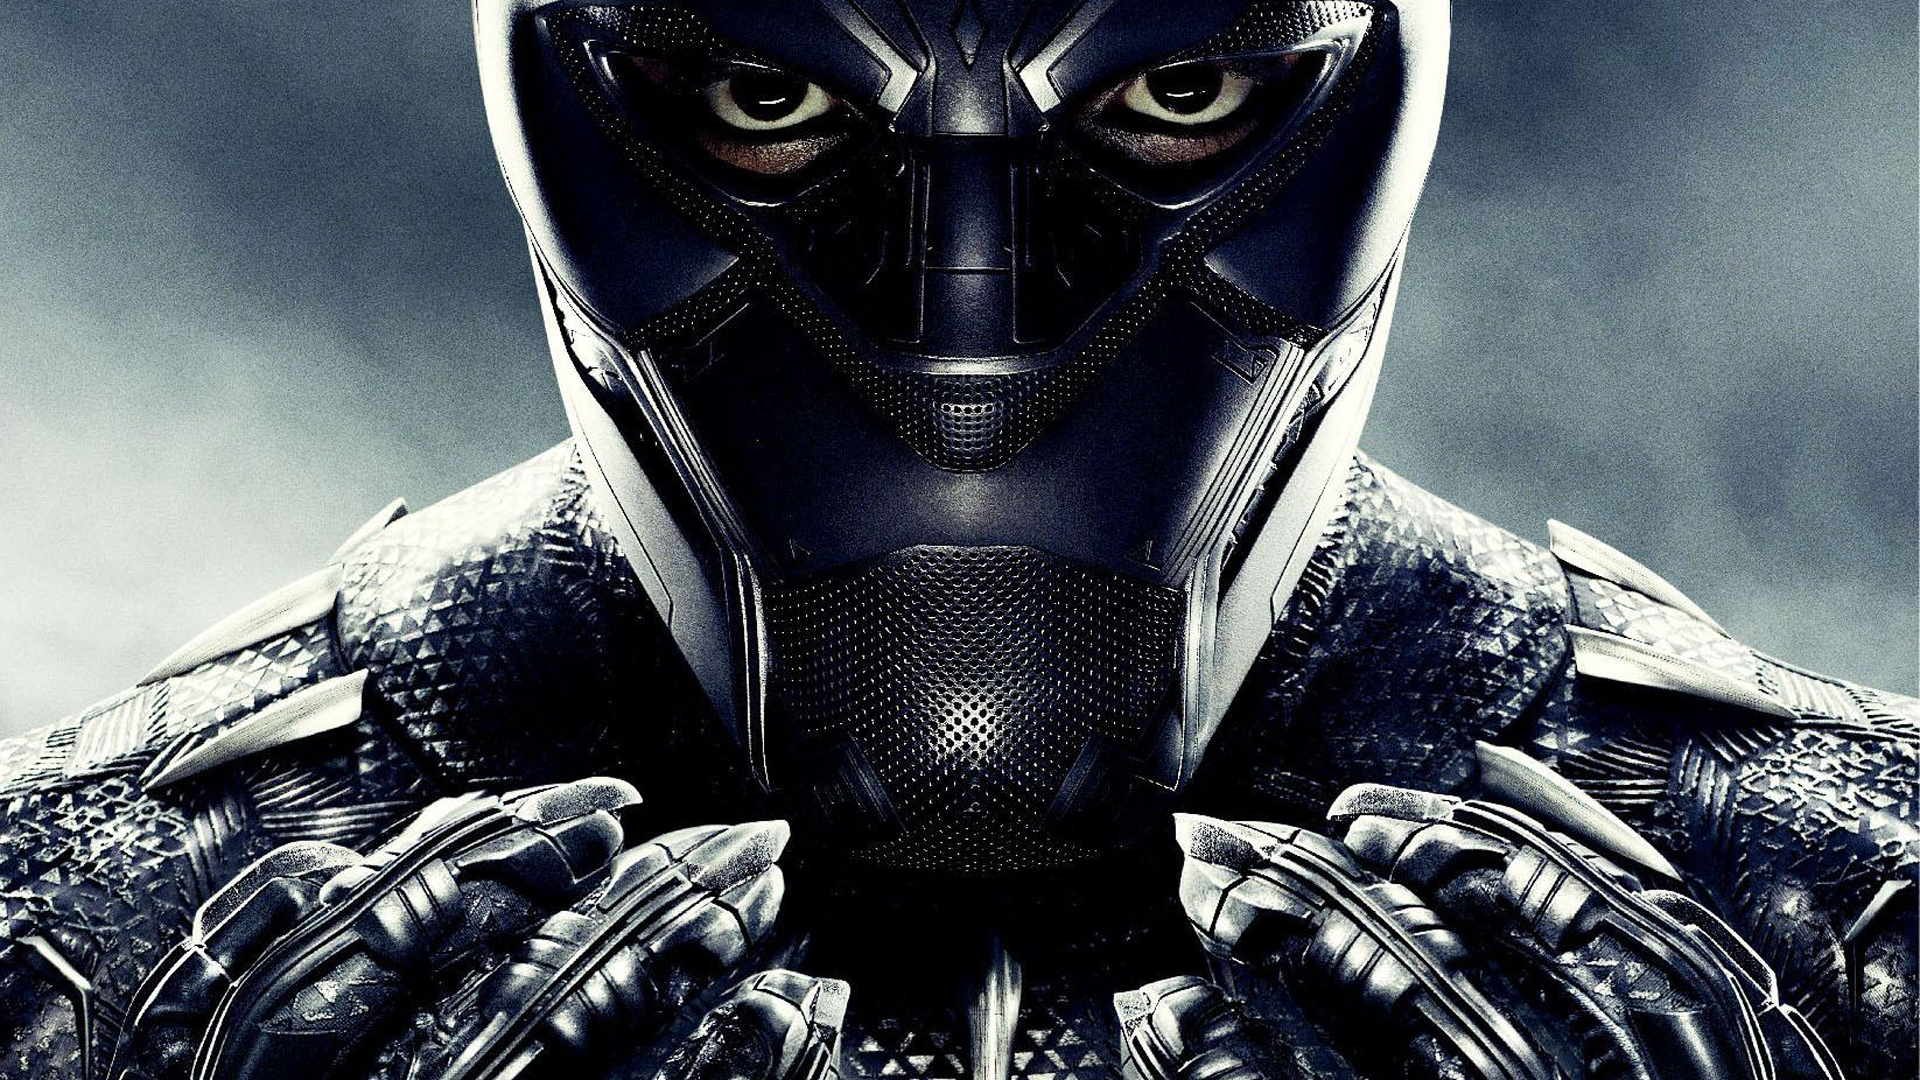 Black Panther 2018 Movie Still Full Hd Wallpaper: 1920x1080 Black Panther 2018 Poster Laptop Full HD 1080P